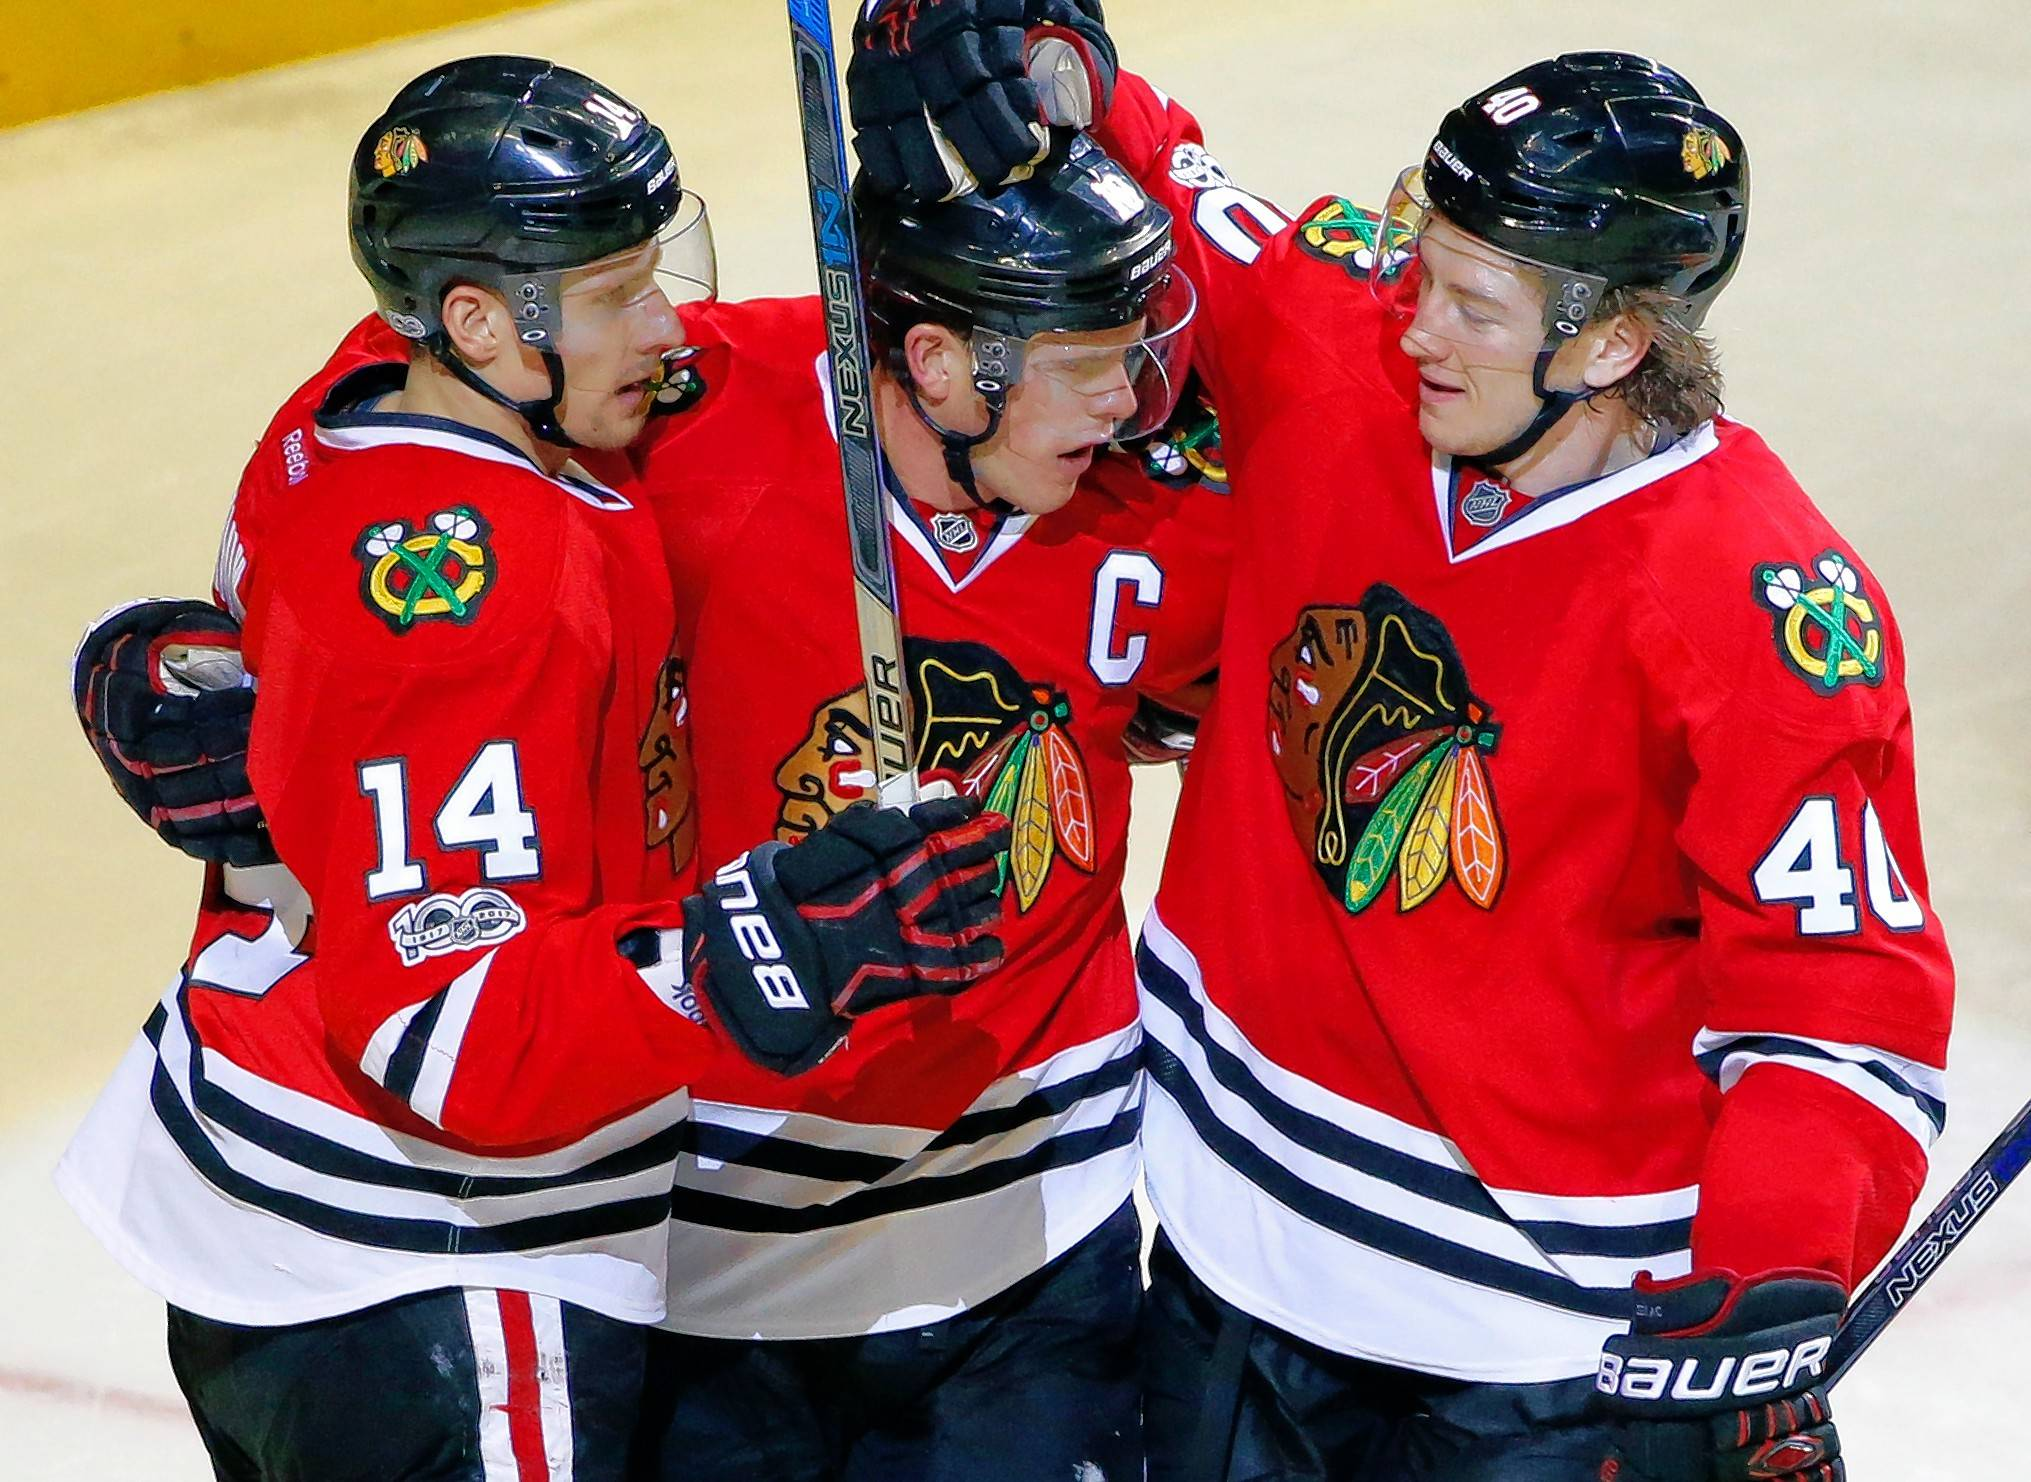 Chicago Blackhawks center Jonathan Toews, center, celebrates with left wing Richard Panik, left, and center John Hayden after scoring his goal against the Colorado Avalanche during the third period of an NHL hockey game Sunday, March 19, 2017, in Chicago. The Blackhawks won 6-3.